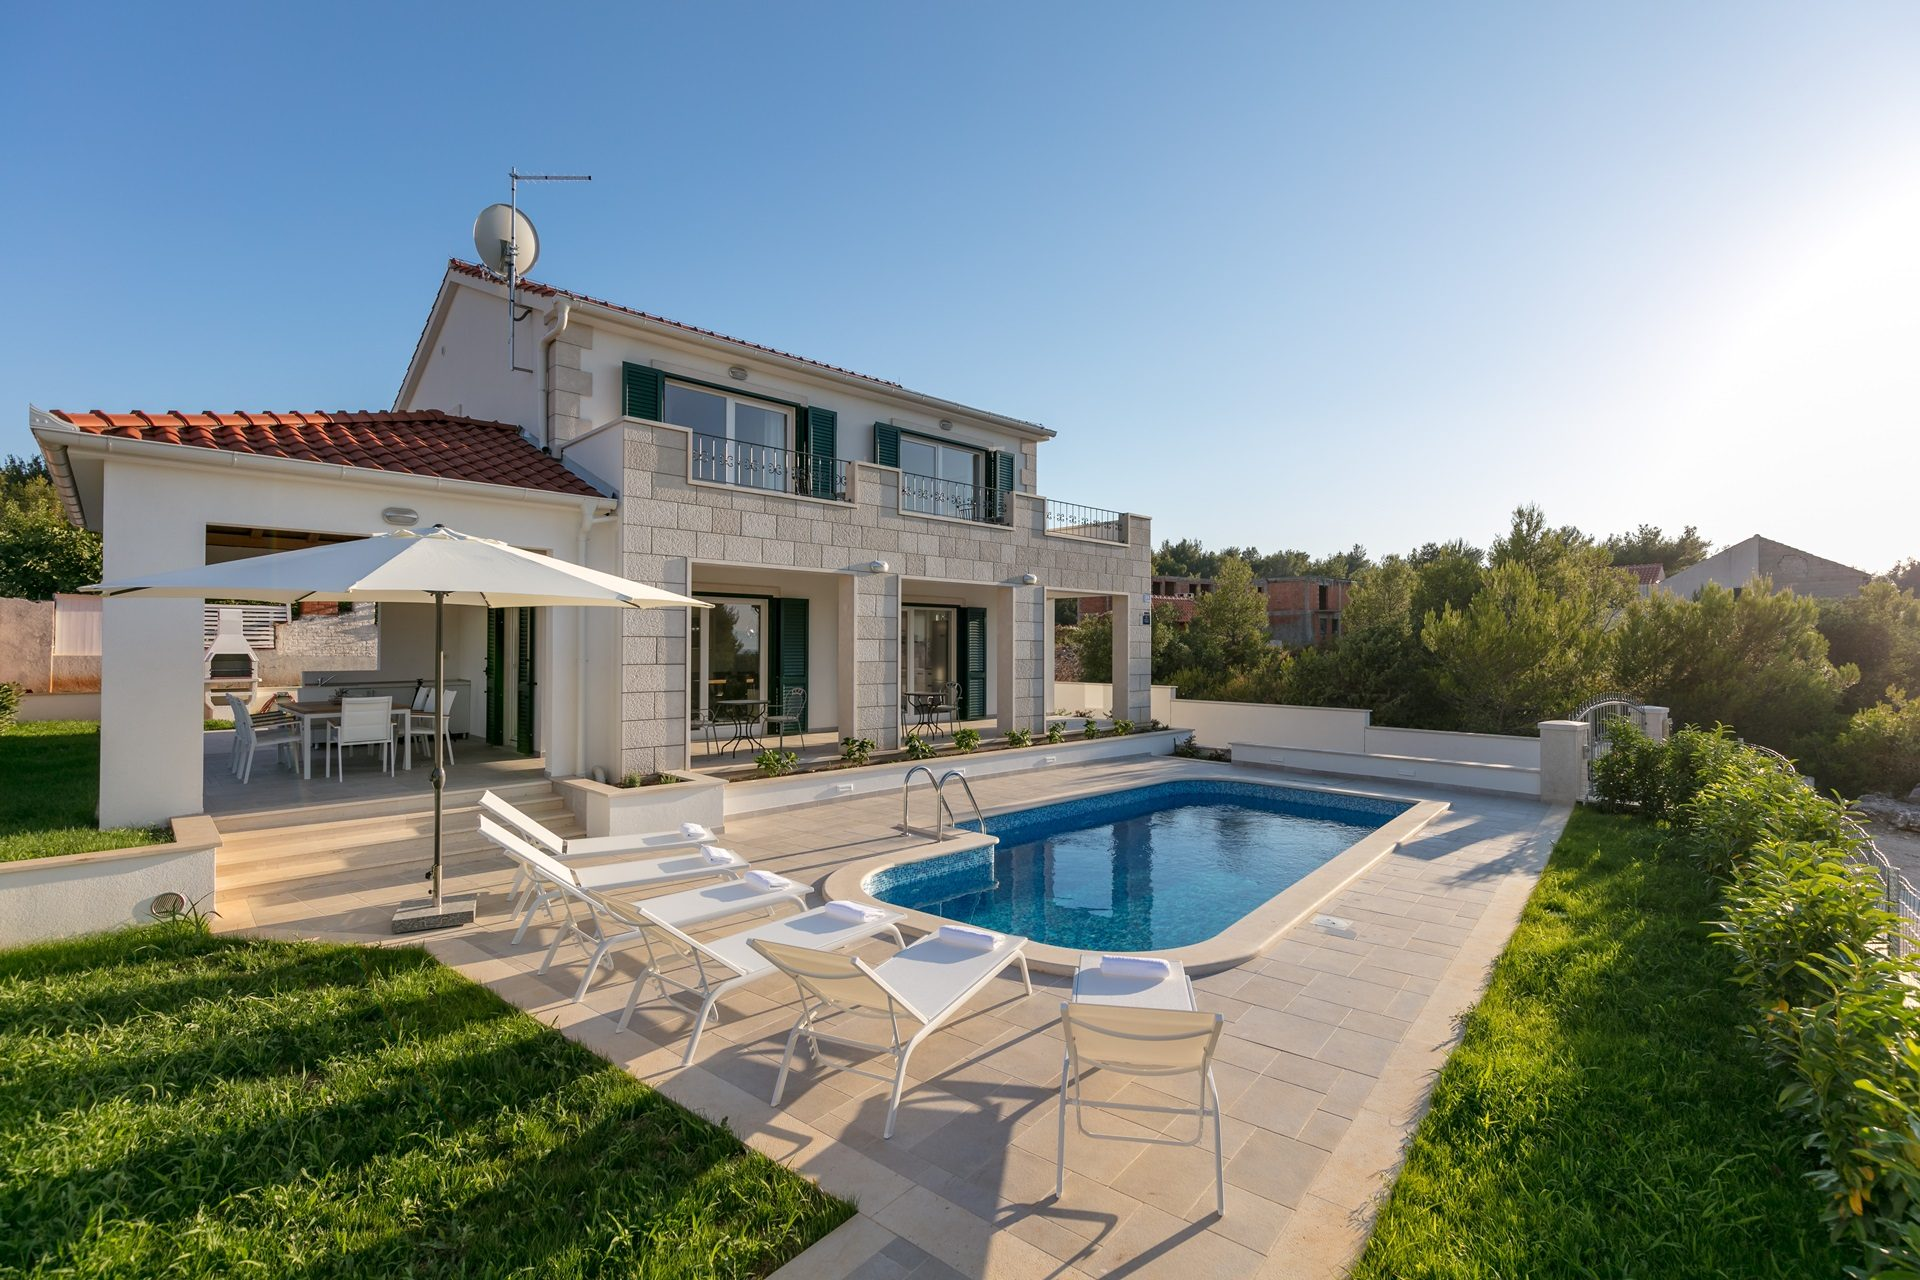 location villa luxe, Croatie, CROBRA 308